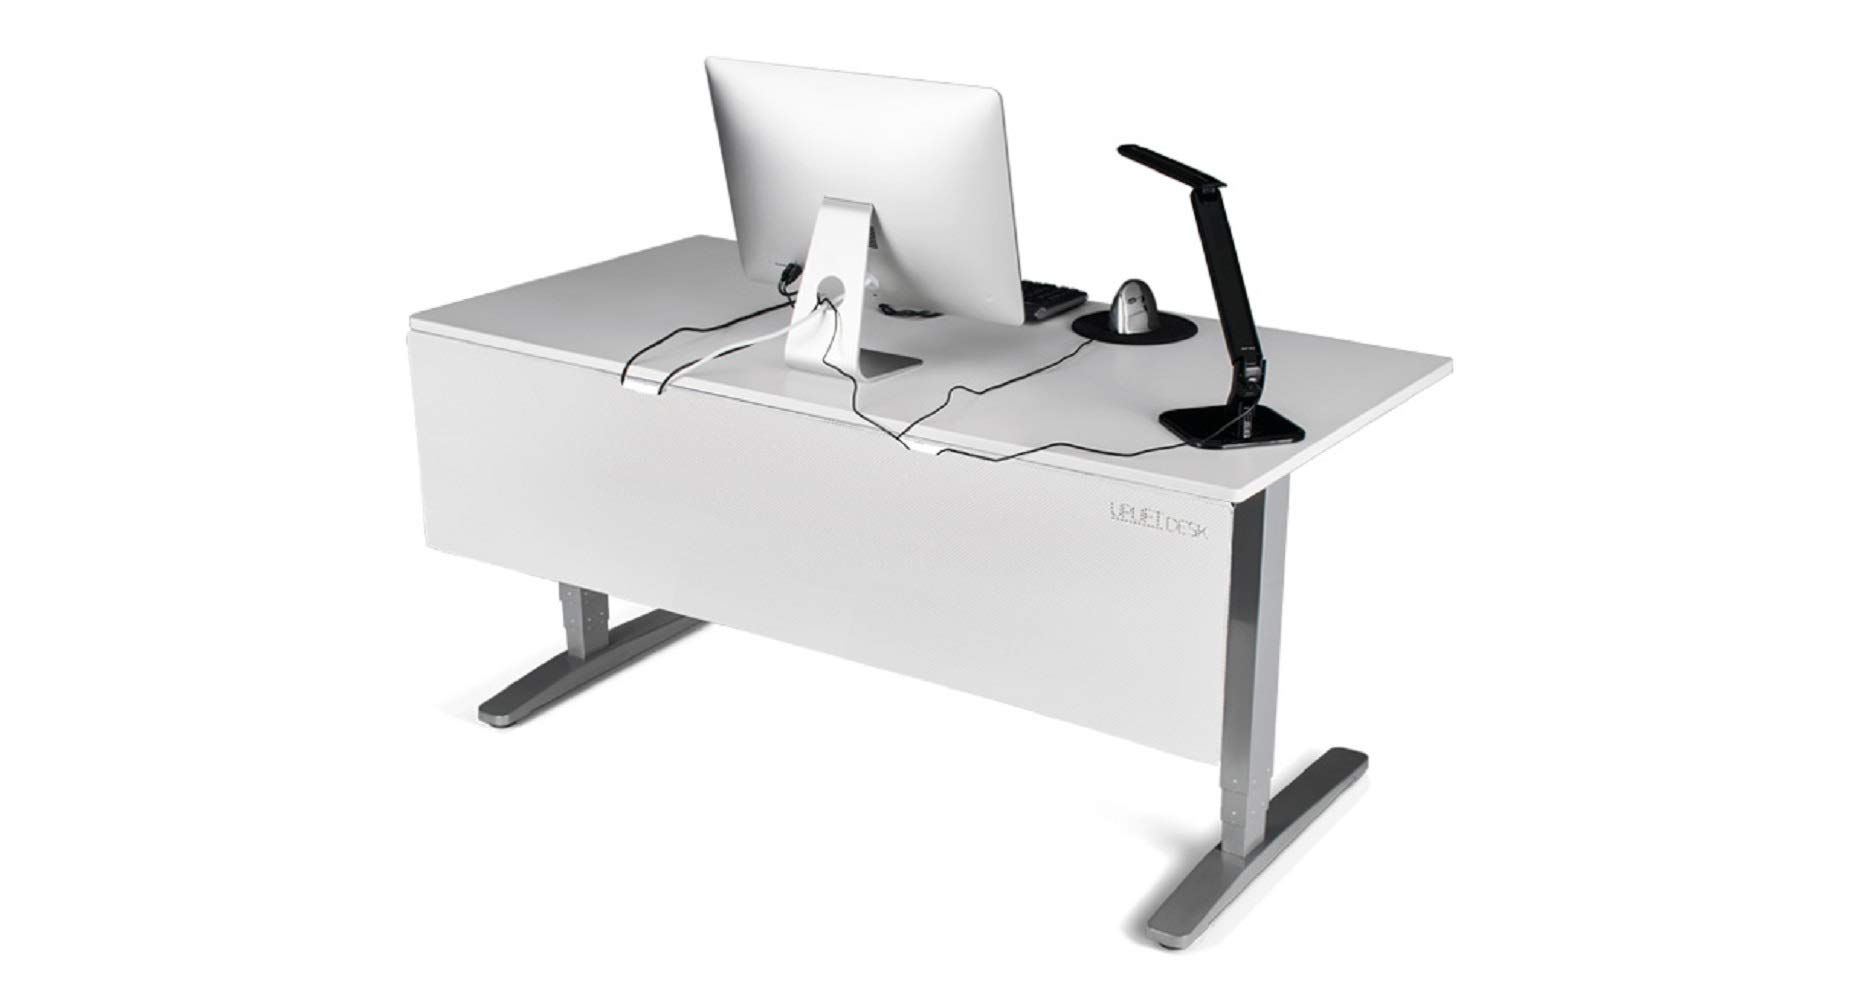 UPLIFT Desk - 29'' Modesty Panel with Wire Management (White) by UPLIFT Desk